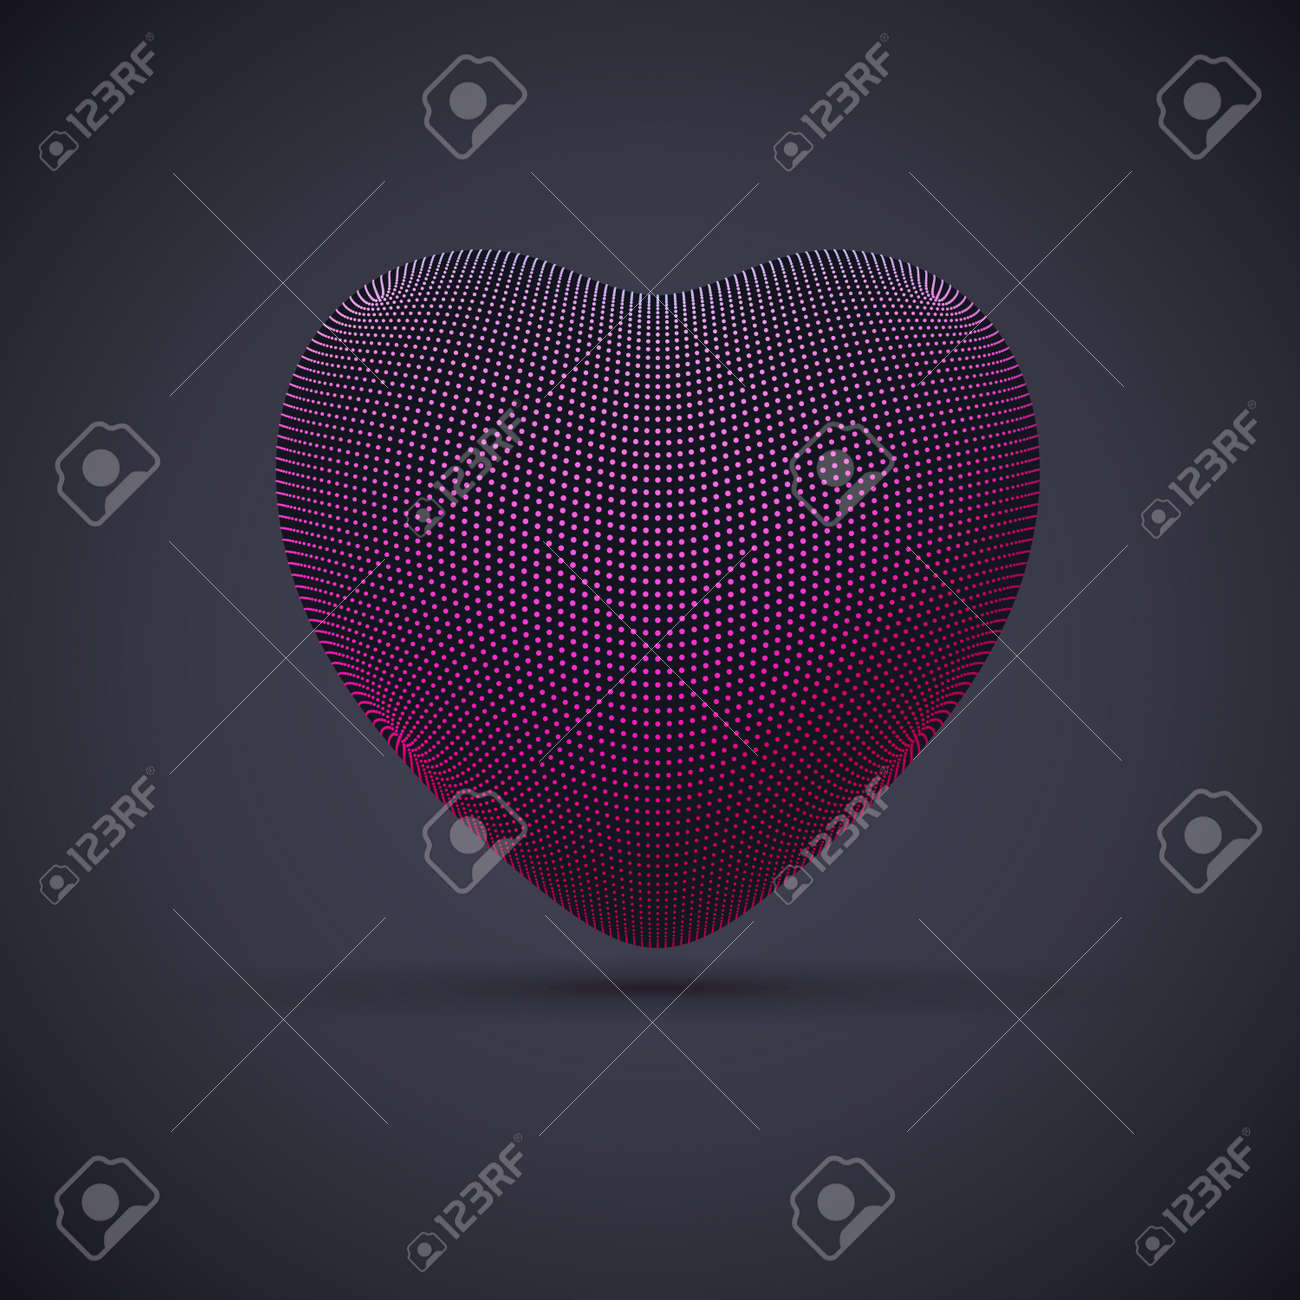 3D digital futuristic pink heart on gray background. Abstract vector illustration of online dating and virtual love. Concept of digital technology in medicine. Greeting postcard for Valentines Day. - 160790099